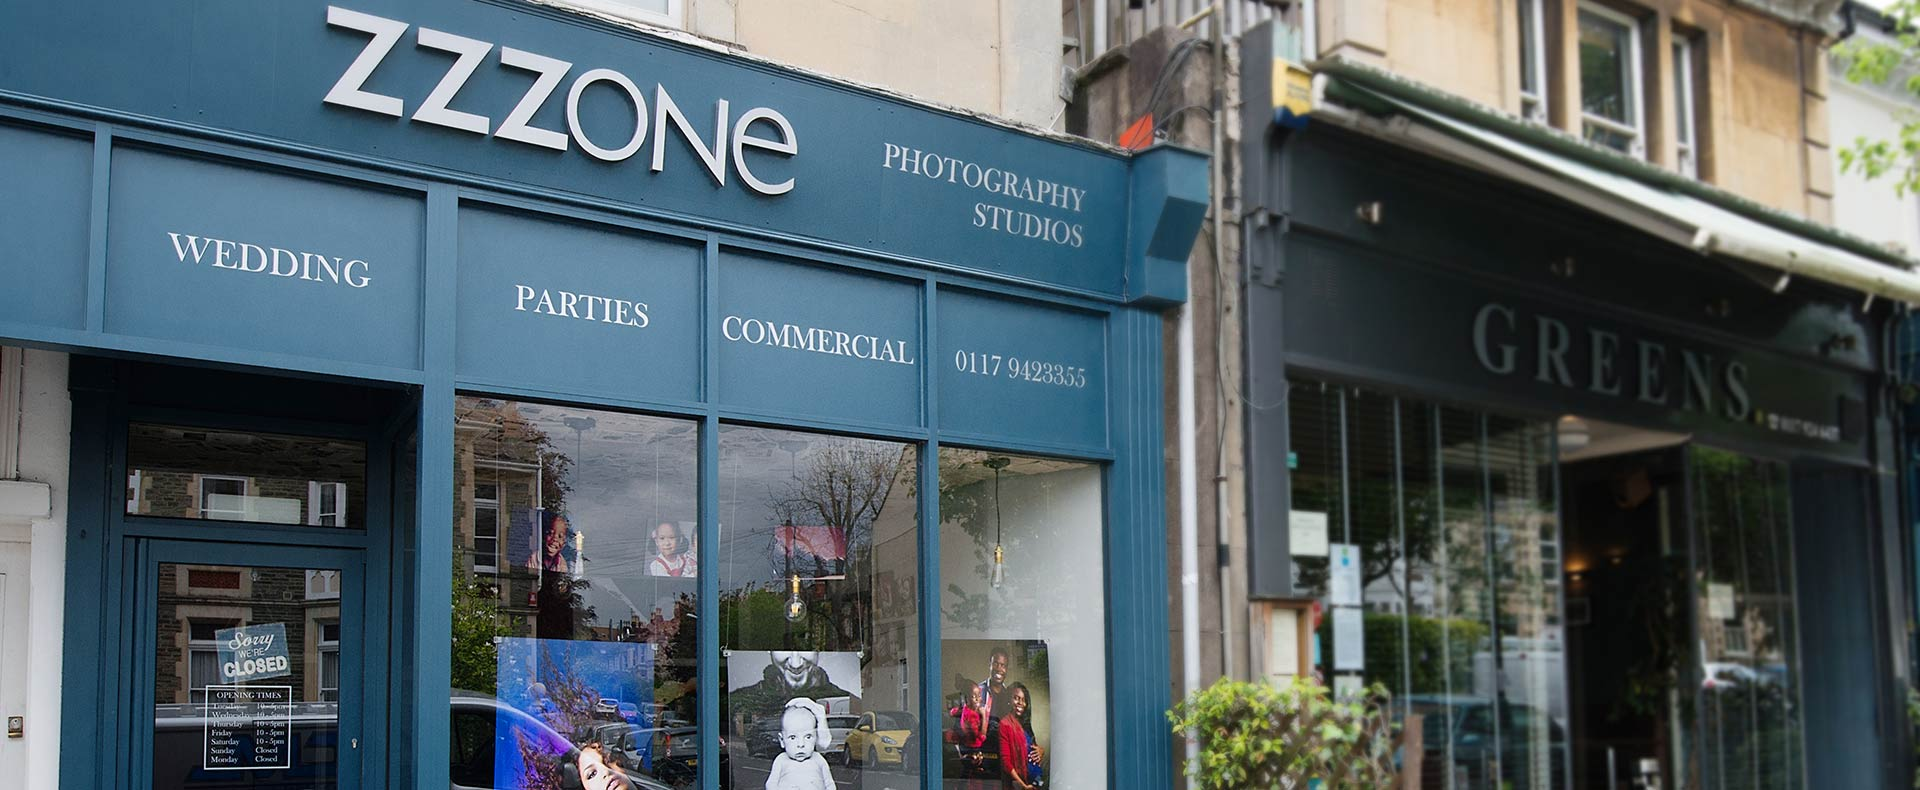 about-the-brand-zzzone-photography-studio-in-bristol